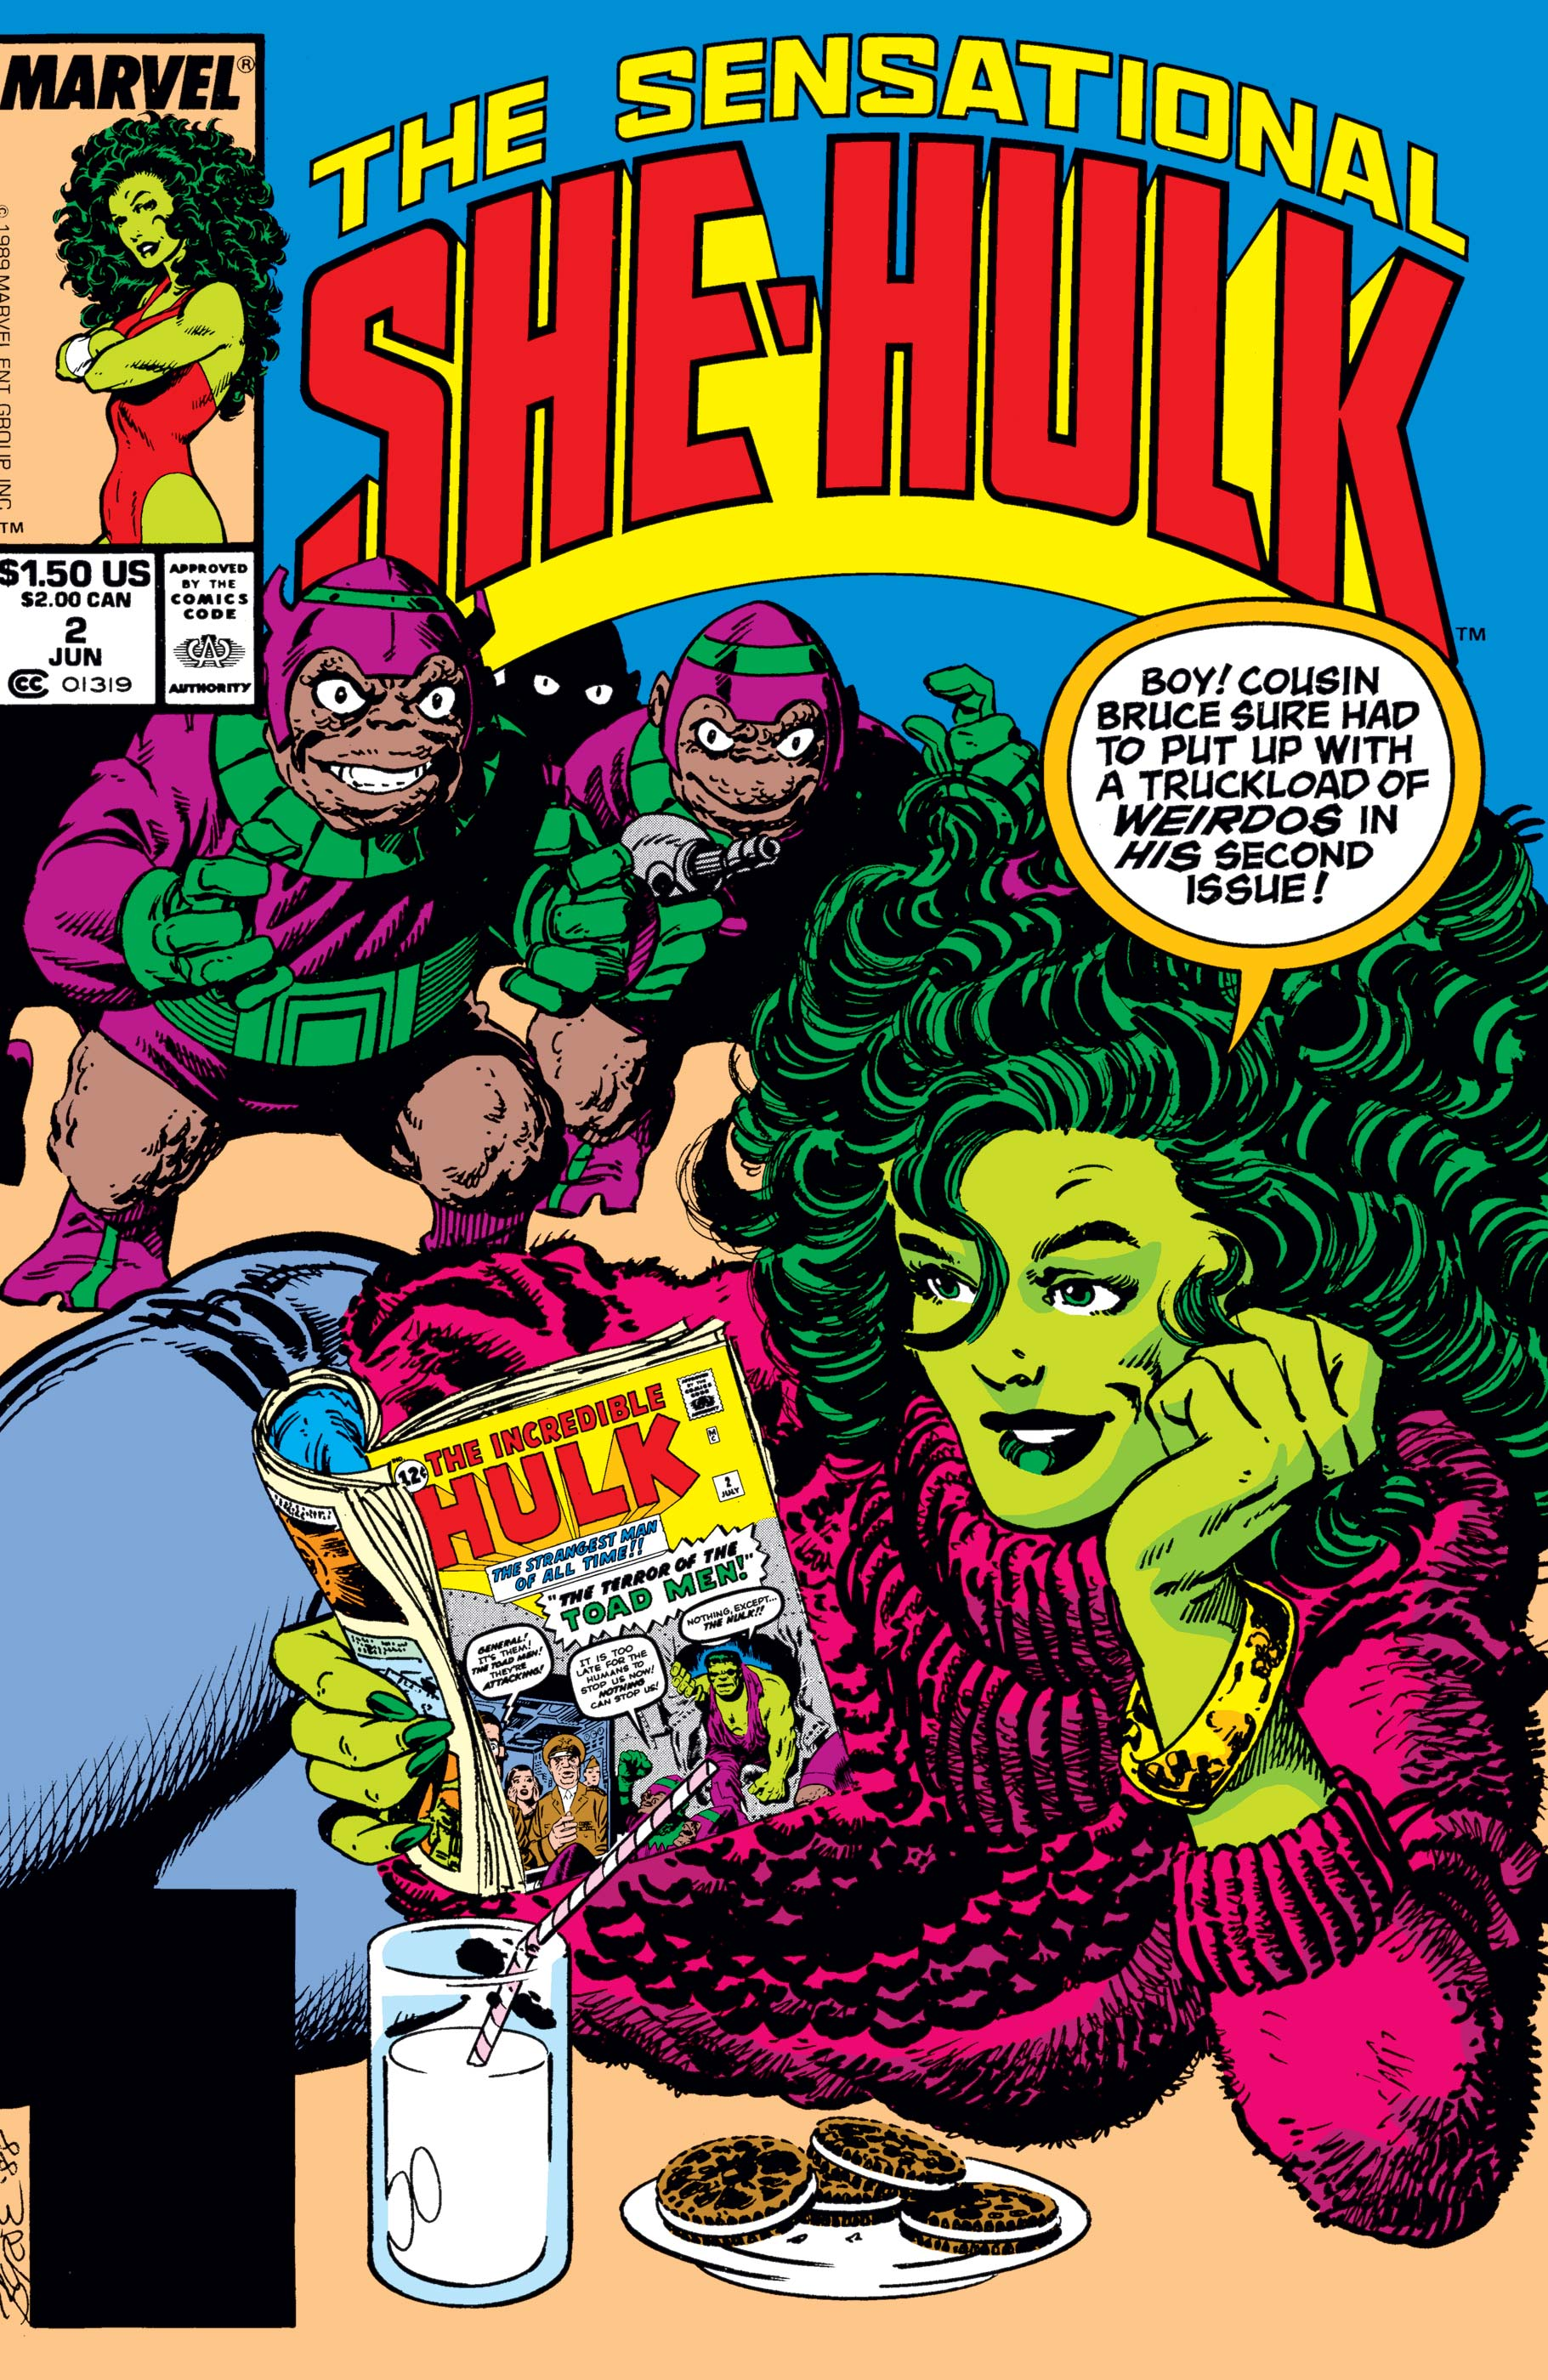 Sensational She-Hulk (1989) #2